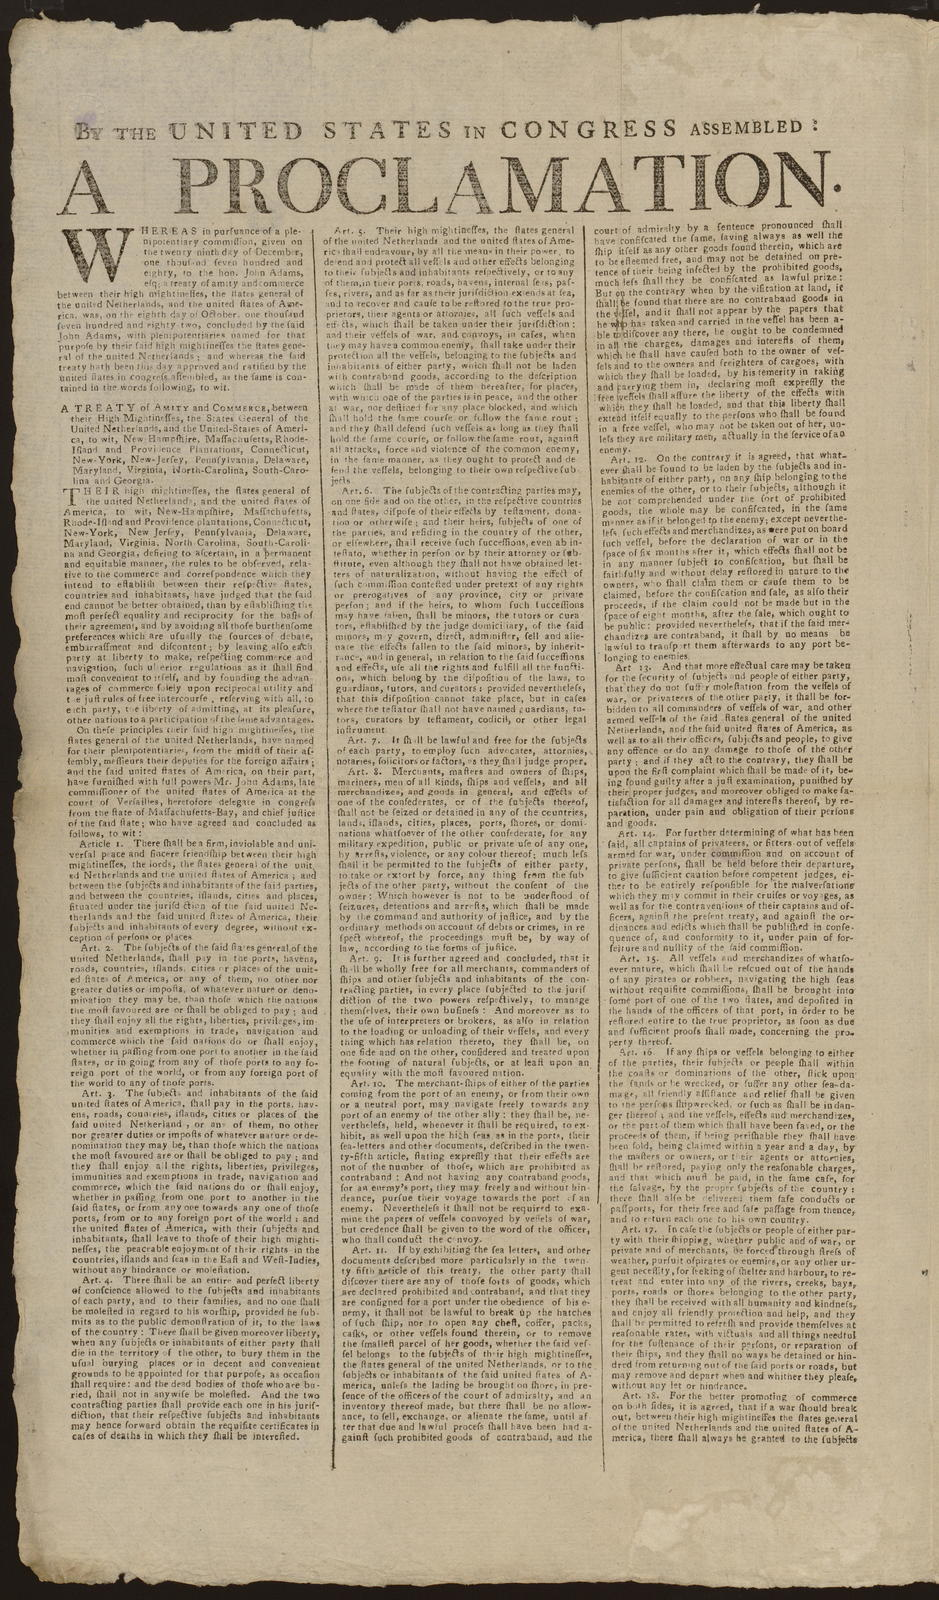 By the United States in Congress assembled. A proclamation : Whereas in pursuance of a plenipotentiary commission ... a treaty of amity and commerce between ... the States General of the United Netherlands and the United States of America was, on the eighth day of October, one thousand seven and eighty two, concluded ...